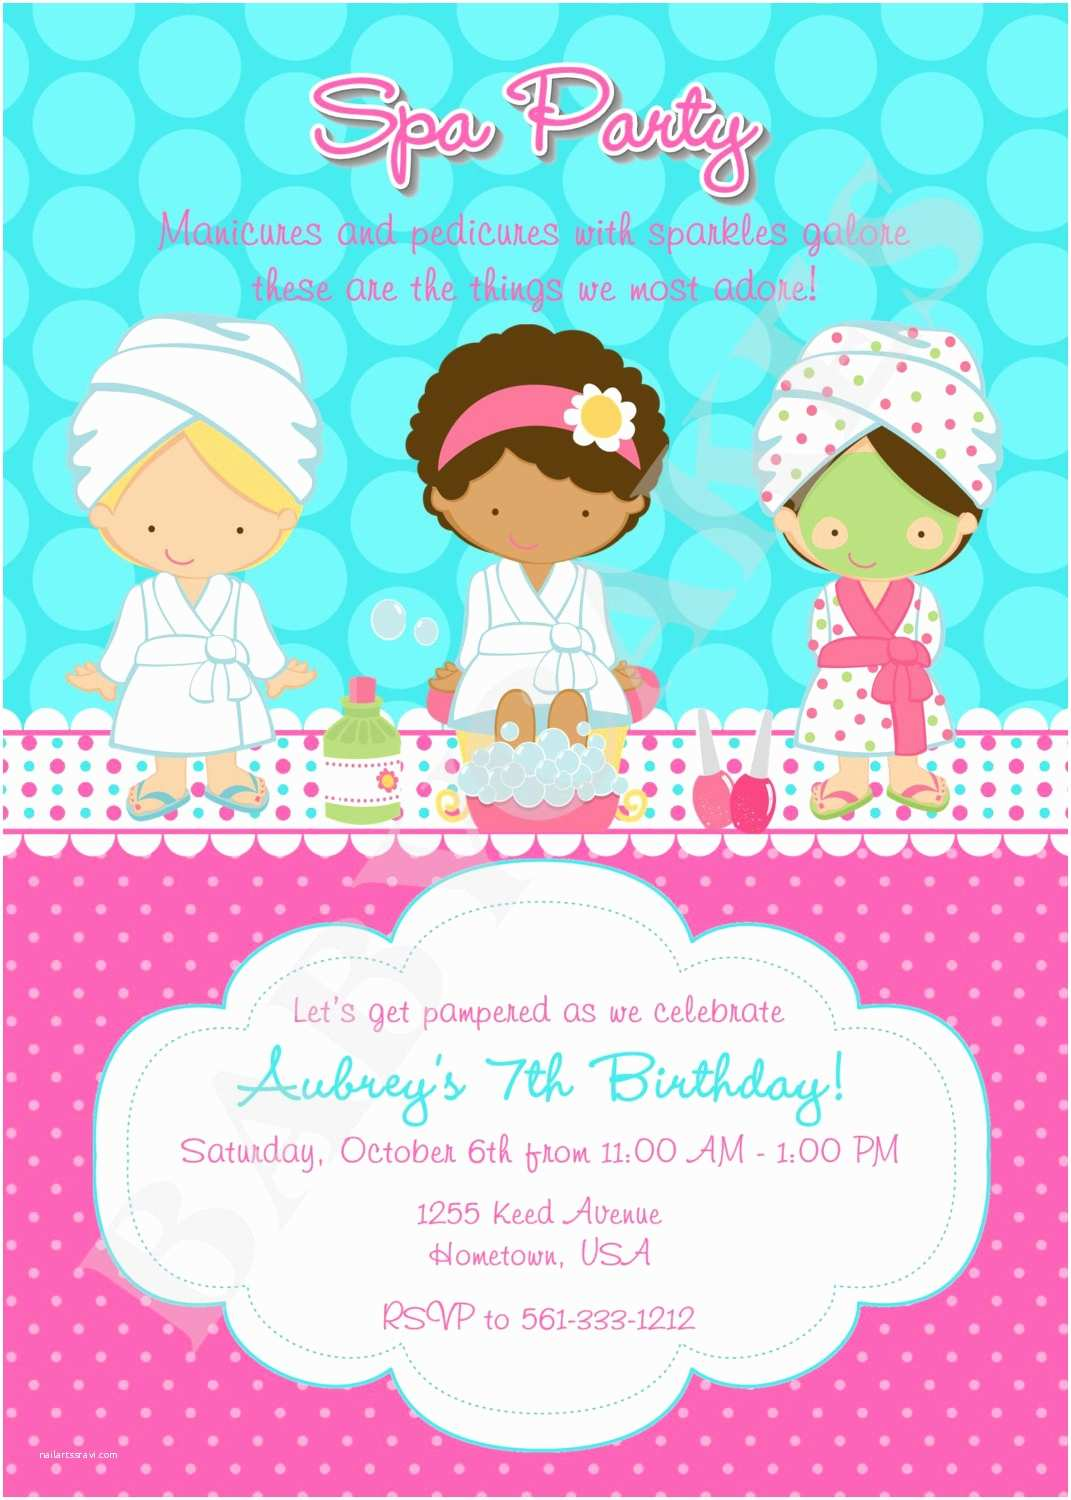 Spa Party Invitations Spa Party Invitation Diy Print Your Own Matching by